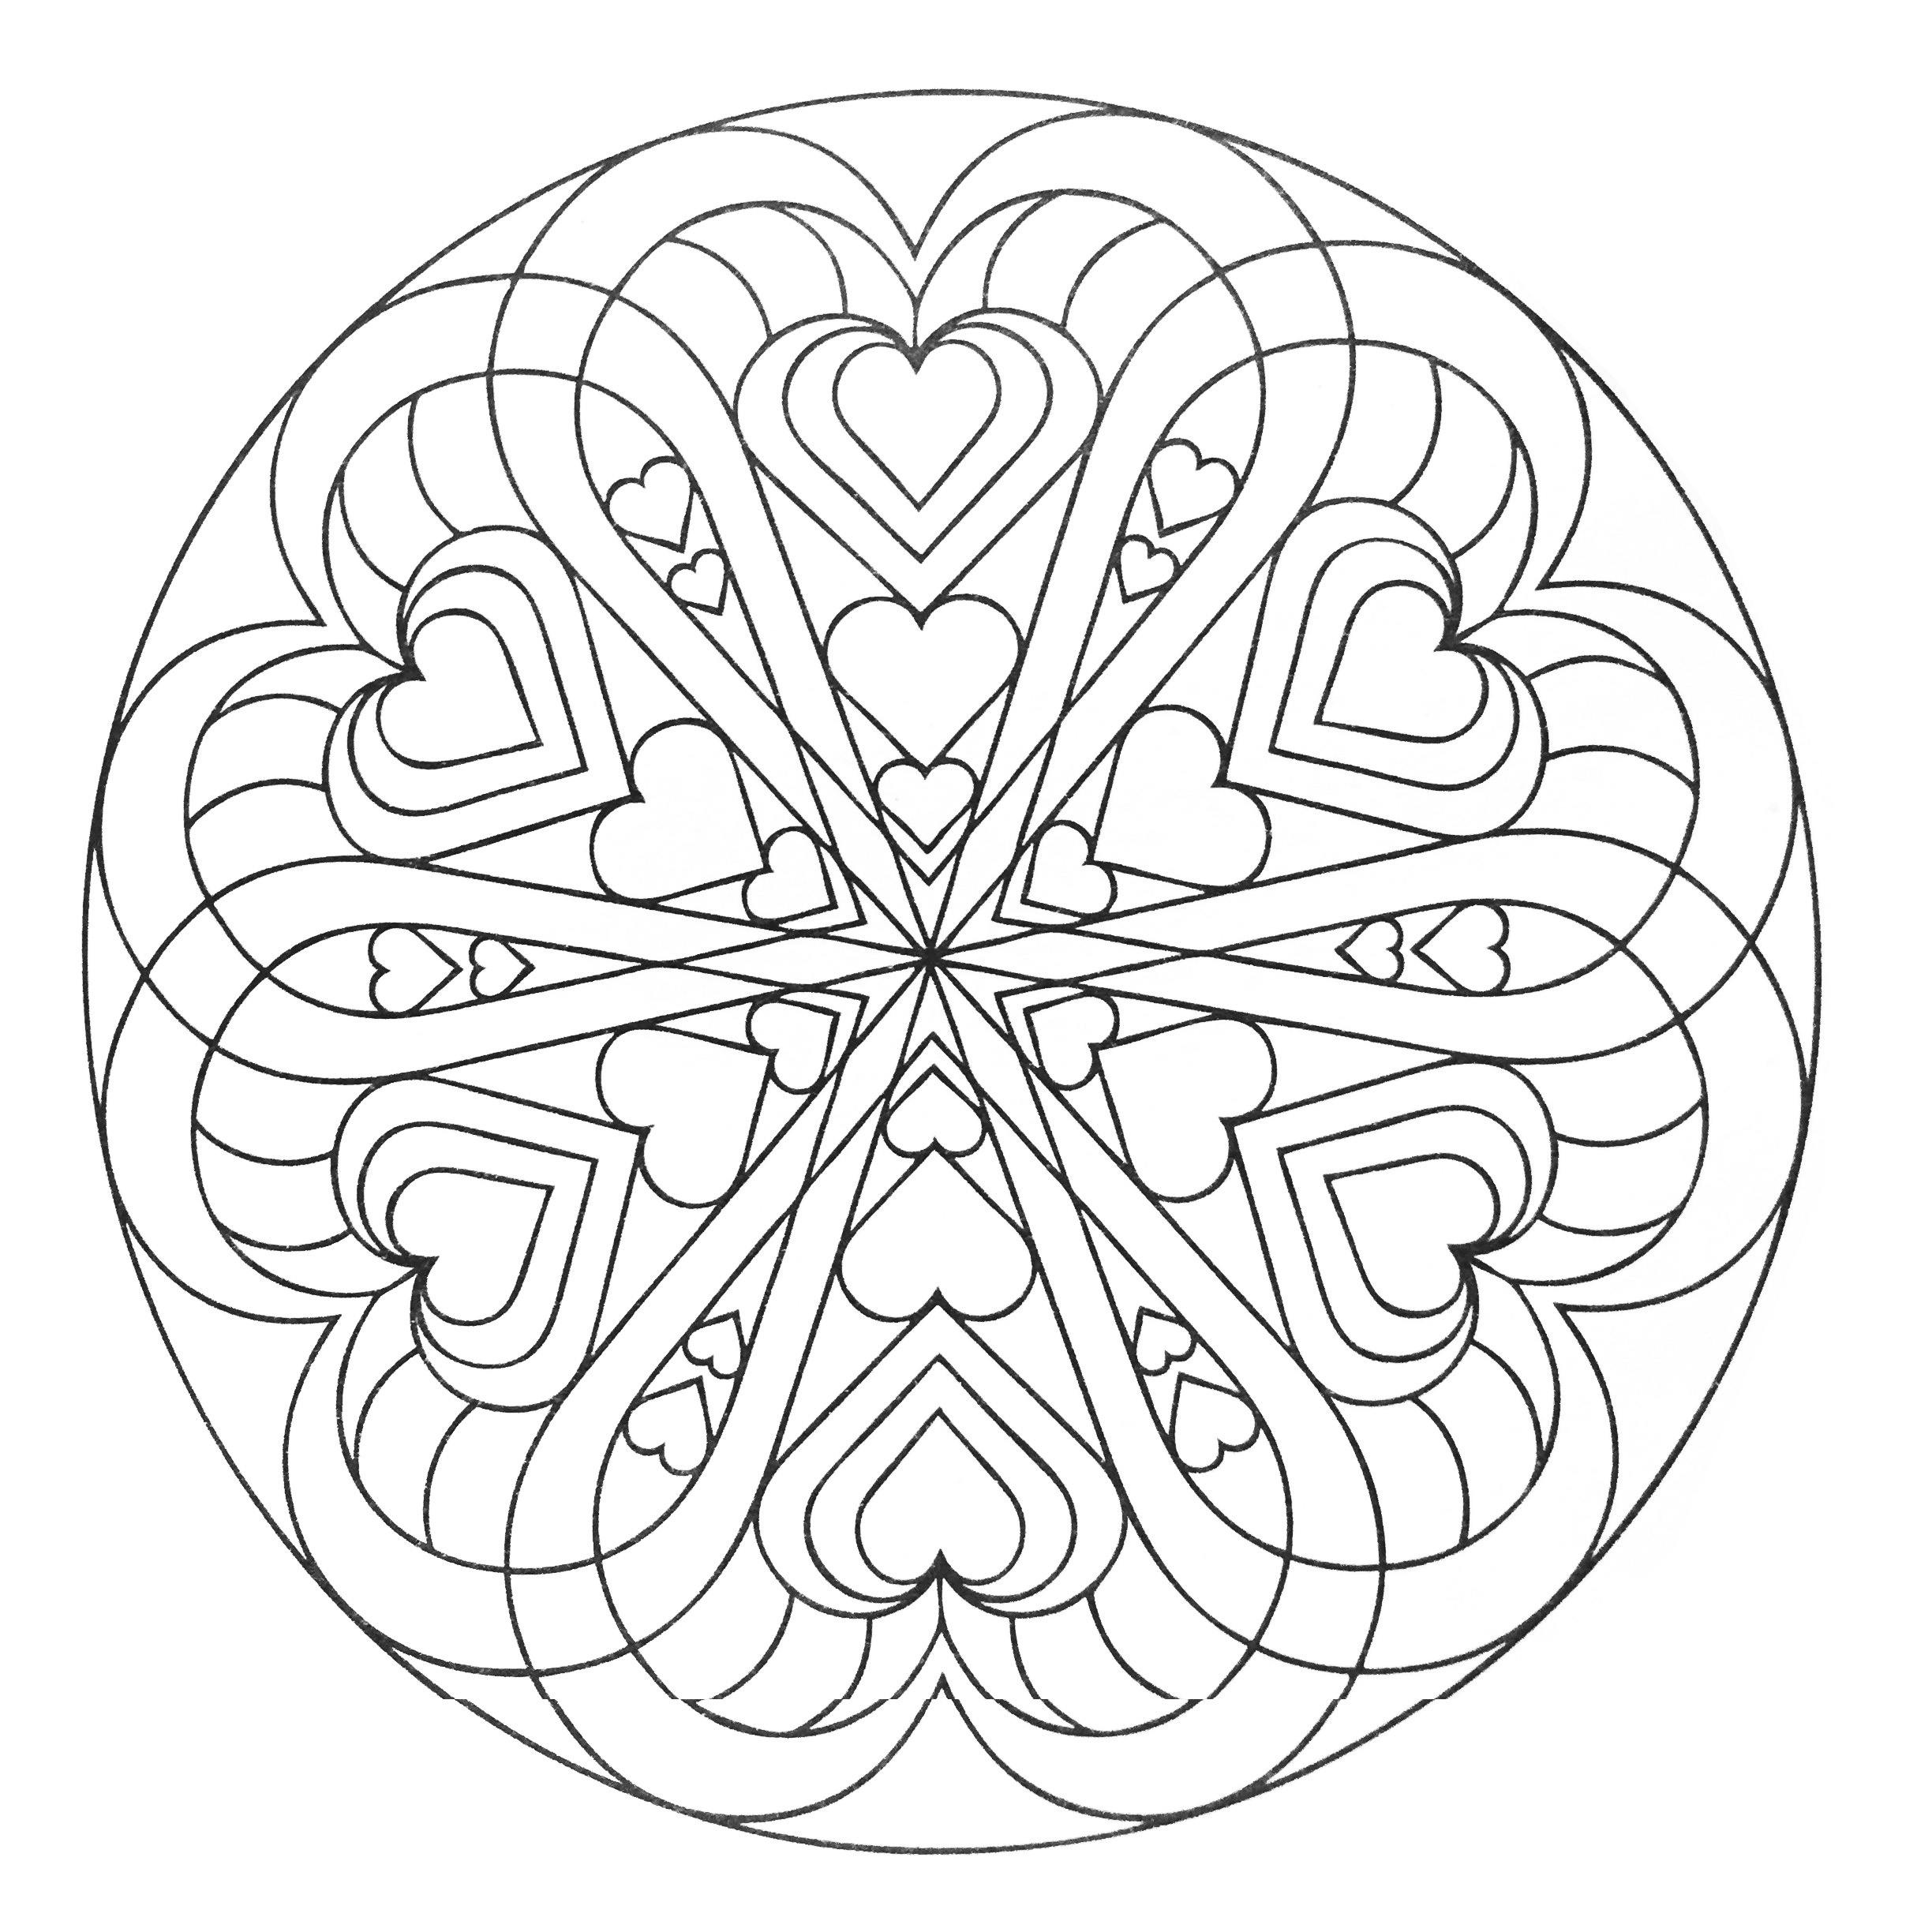 Coloriage mandala my blog - Colorier mandala ...